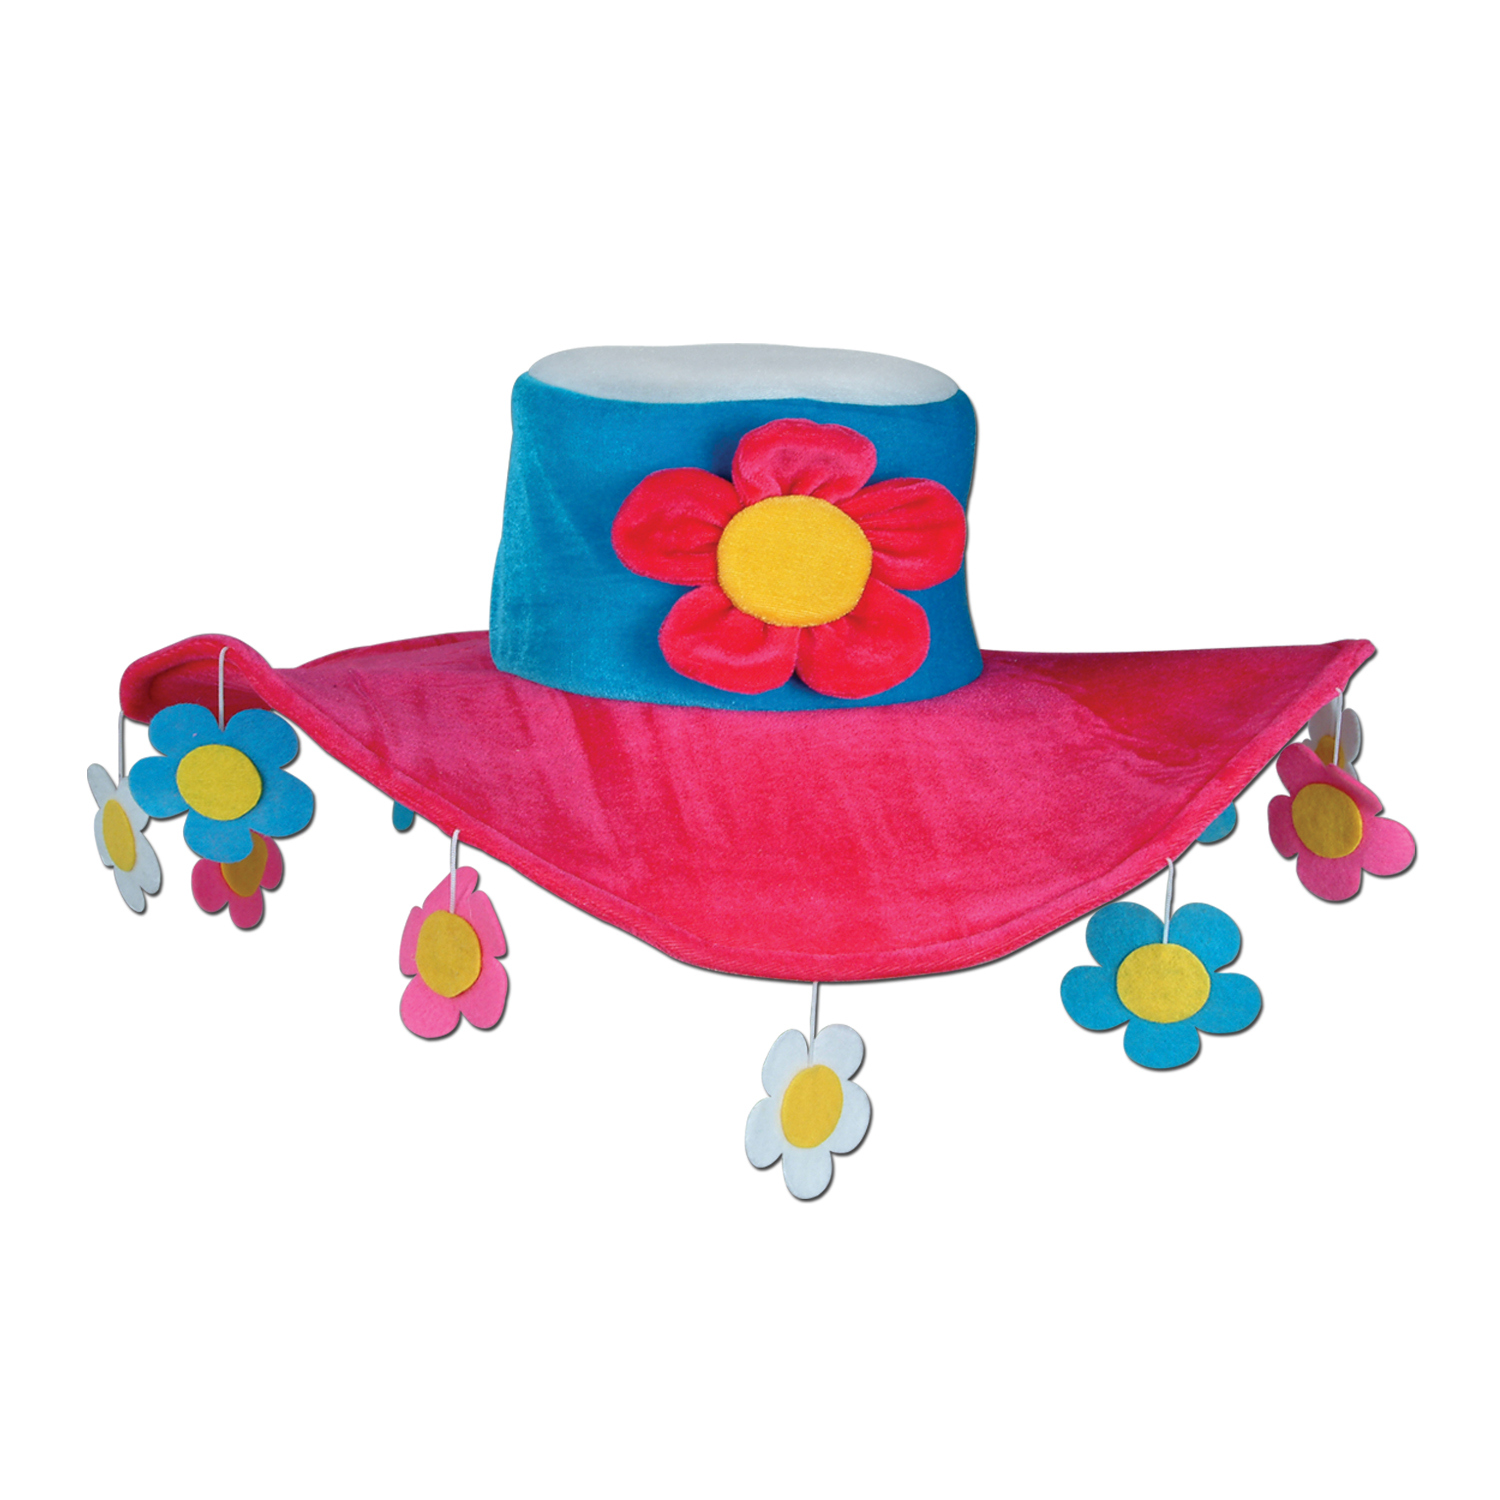 Plush Flower Power Hat (Pack of 6) Peace, hat, flower, 60s, flower power, plush hat